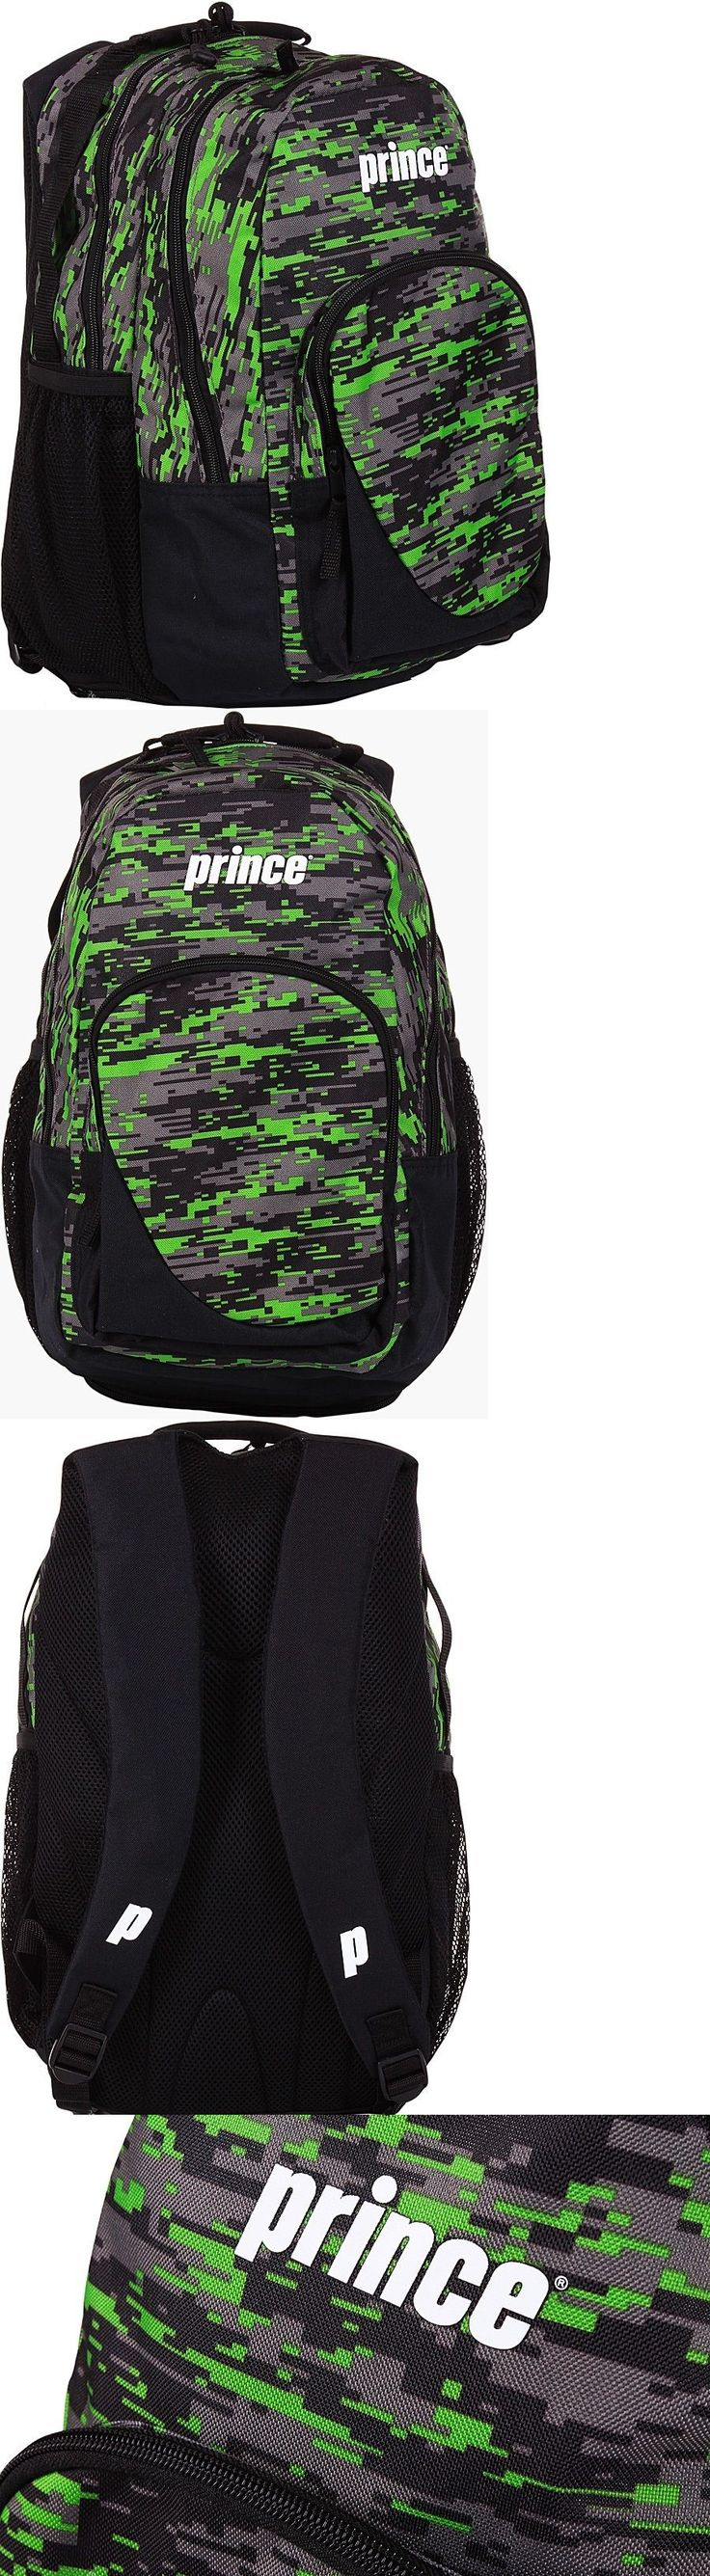 Bags 20869: Prince 2016 Team Backpack Tennis Racquet Bag Black Digital Camo Green New Nwt -> BUY IT NOW ONLY: $64.99 on eBay!